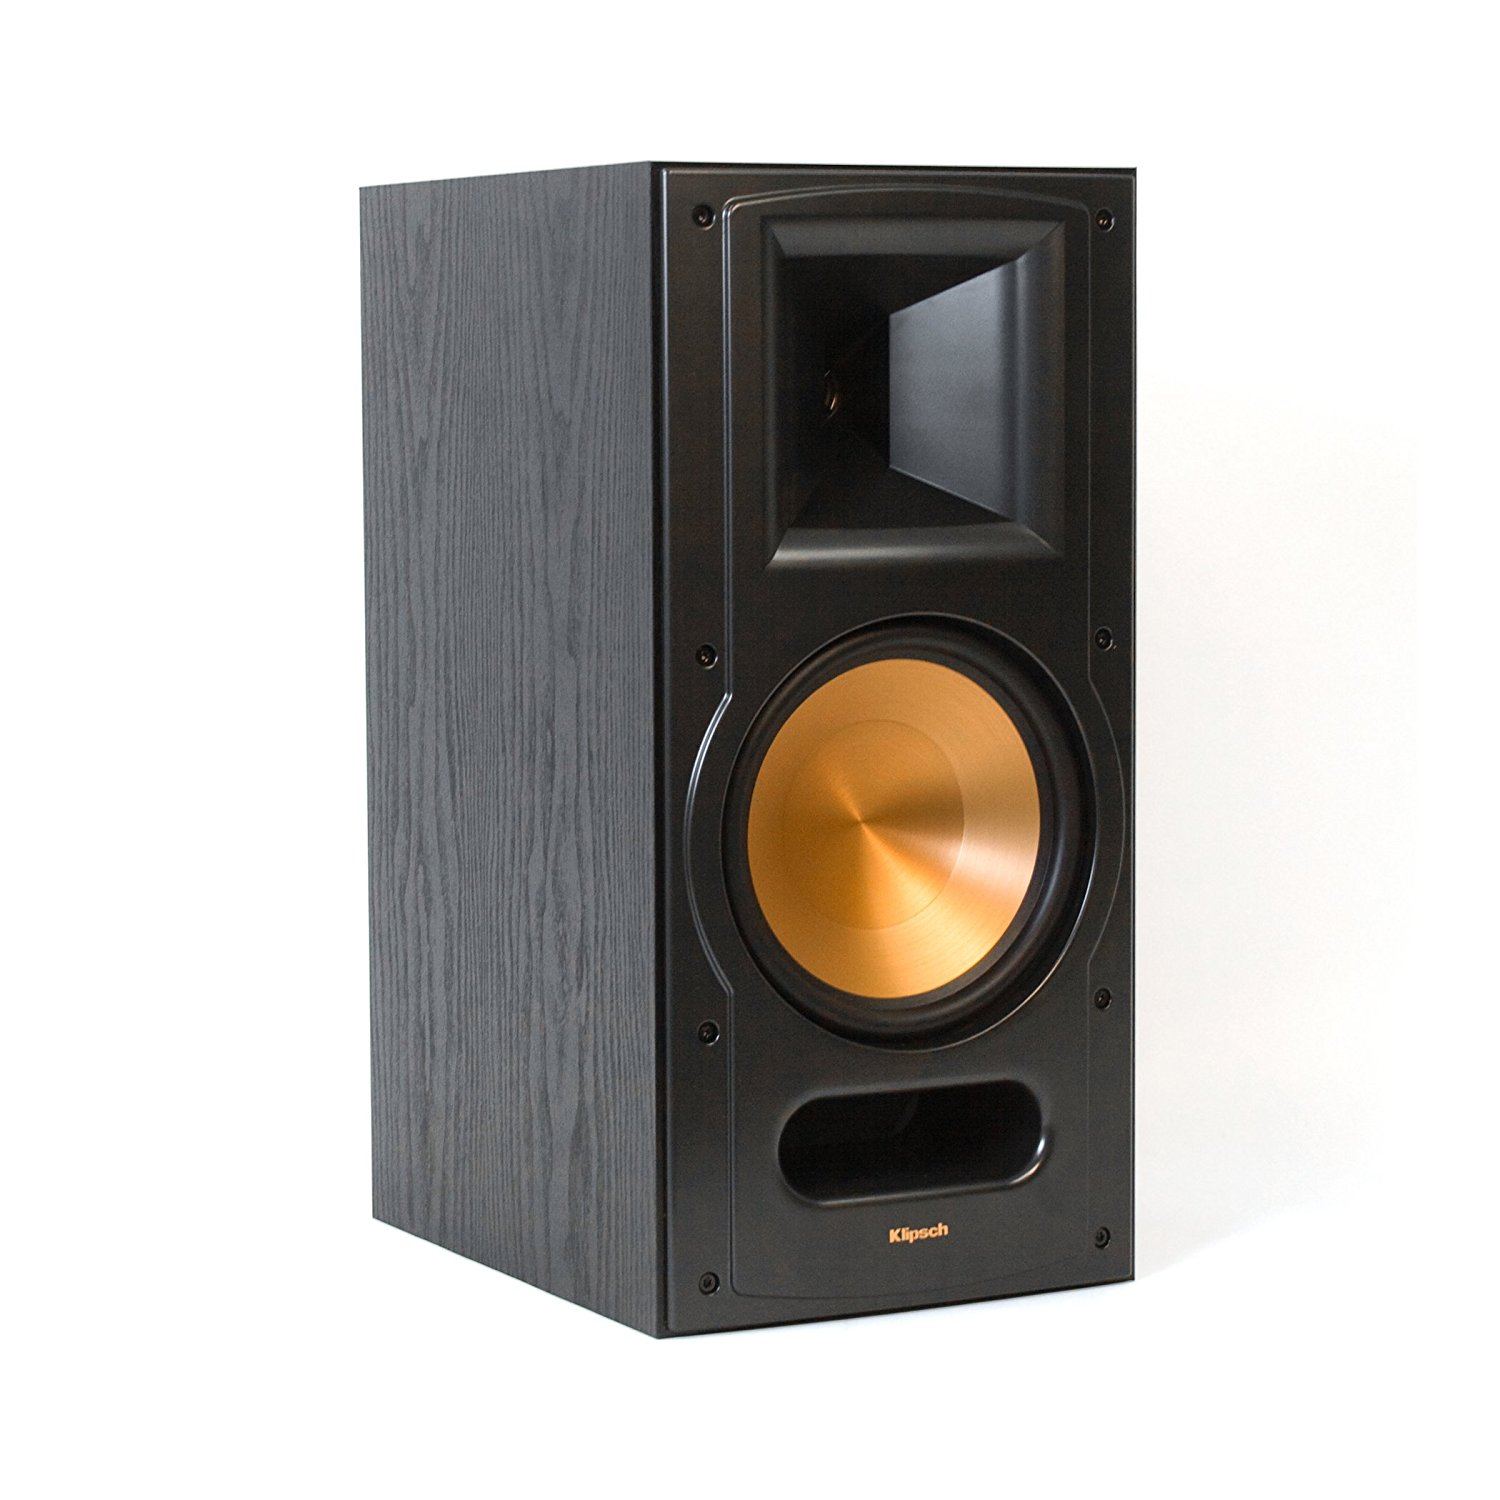 The Look Of This Speaker Is Very Sophisticated As Well Even Though Color May Be A Bit On Darker Side Ie Copper